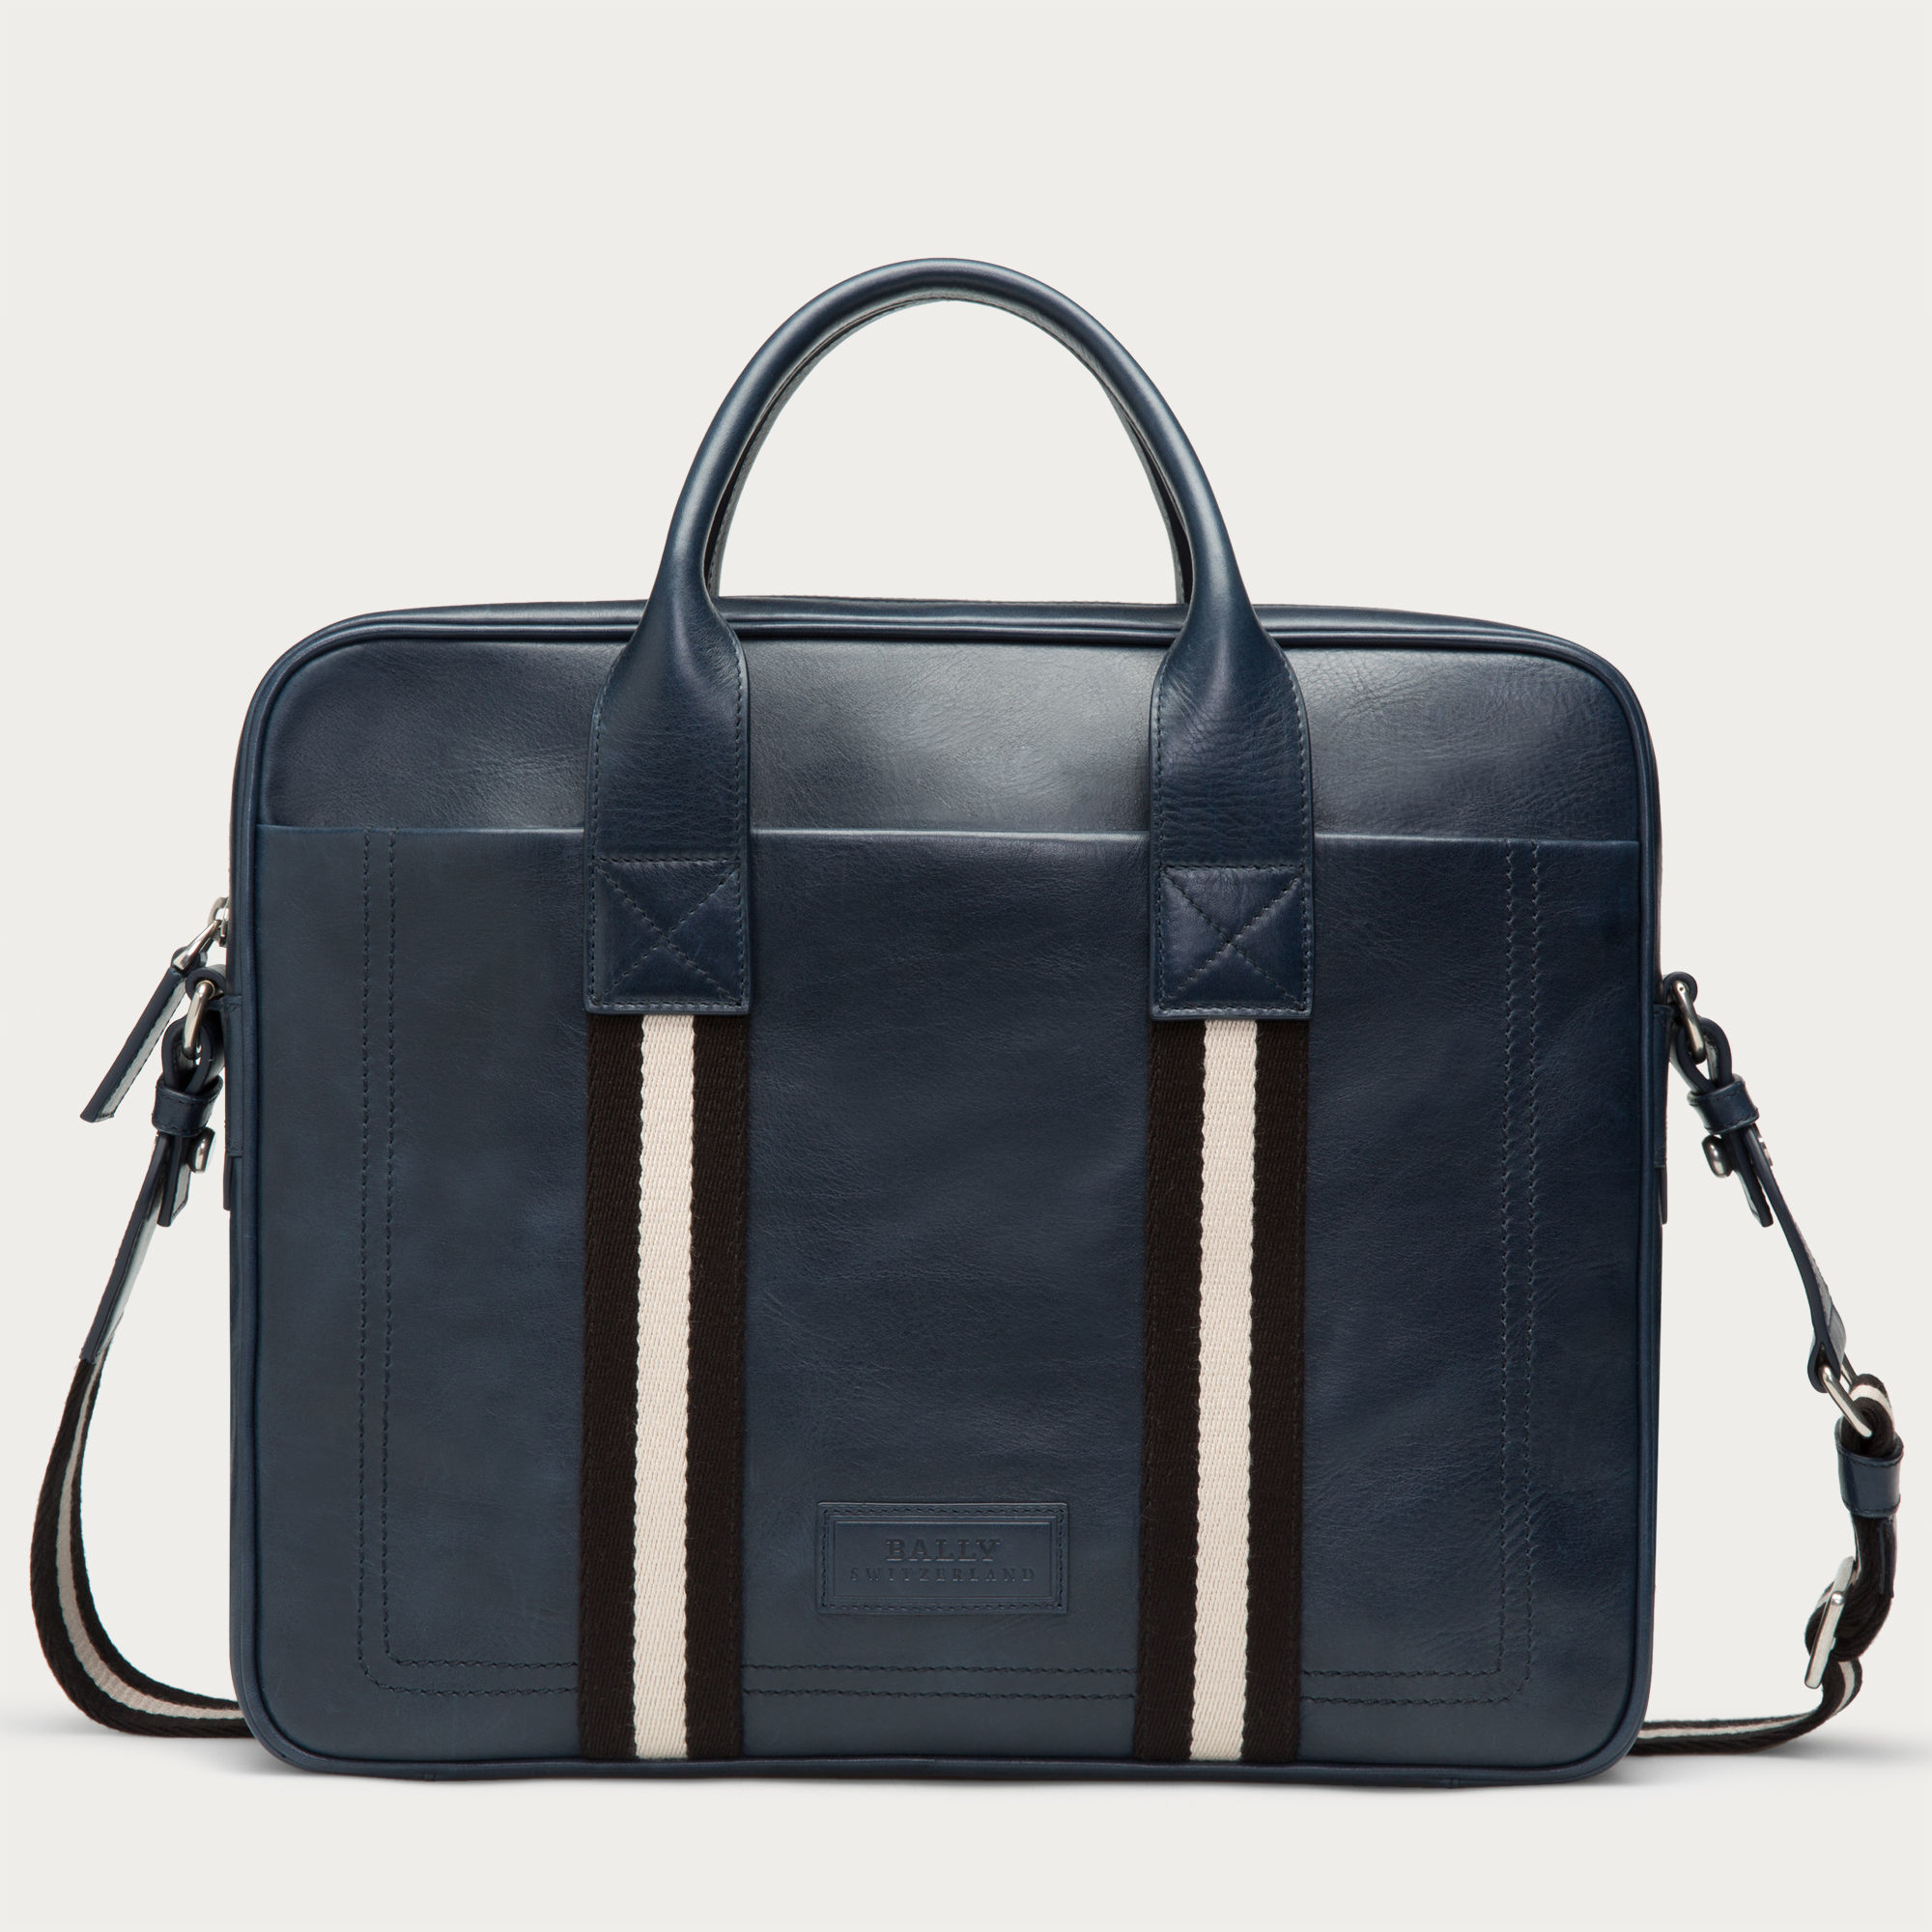 f28d942ca4b1 Lyst - Bally Tedal Medium Men s Leather Business Bag In New Blue in Blue